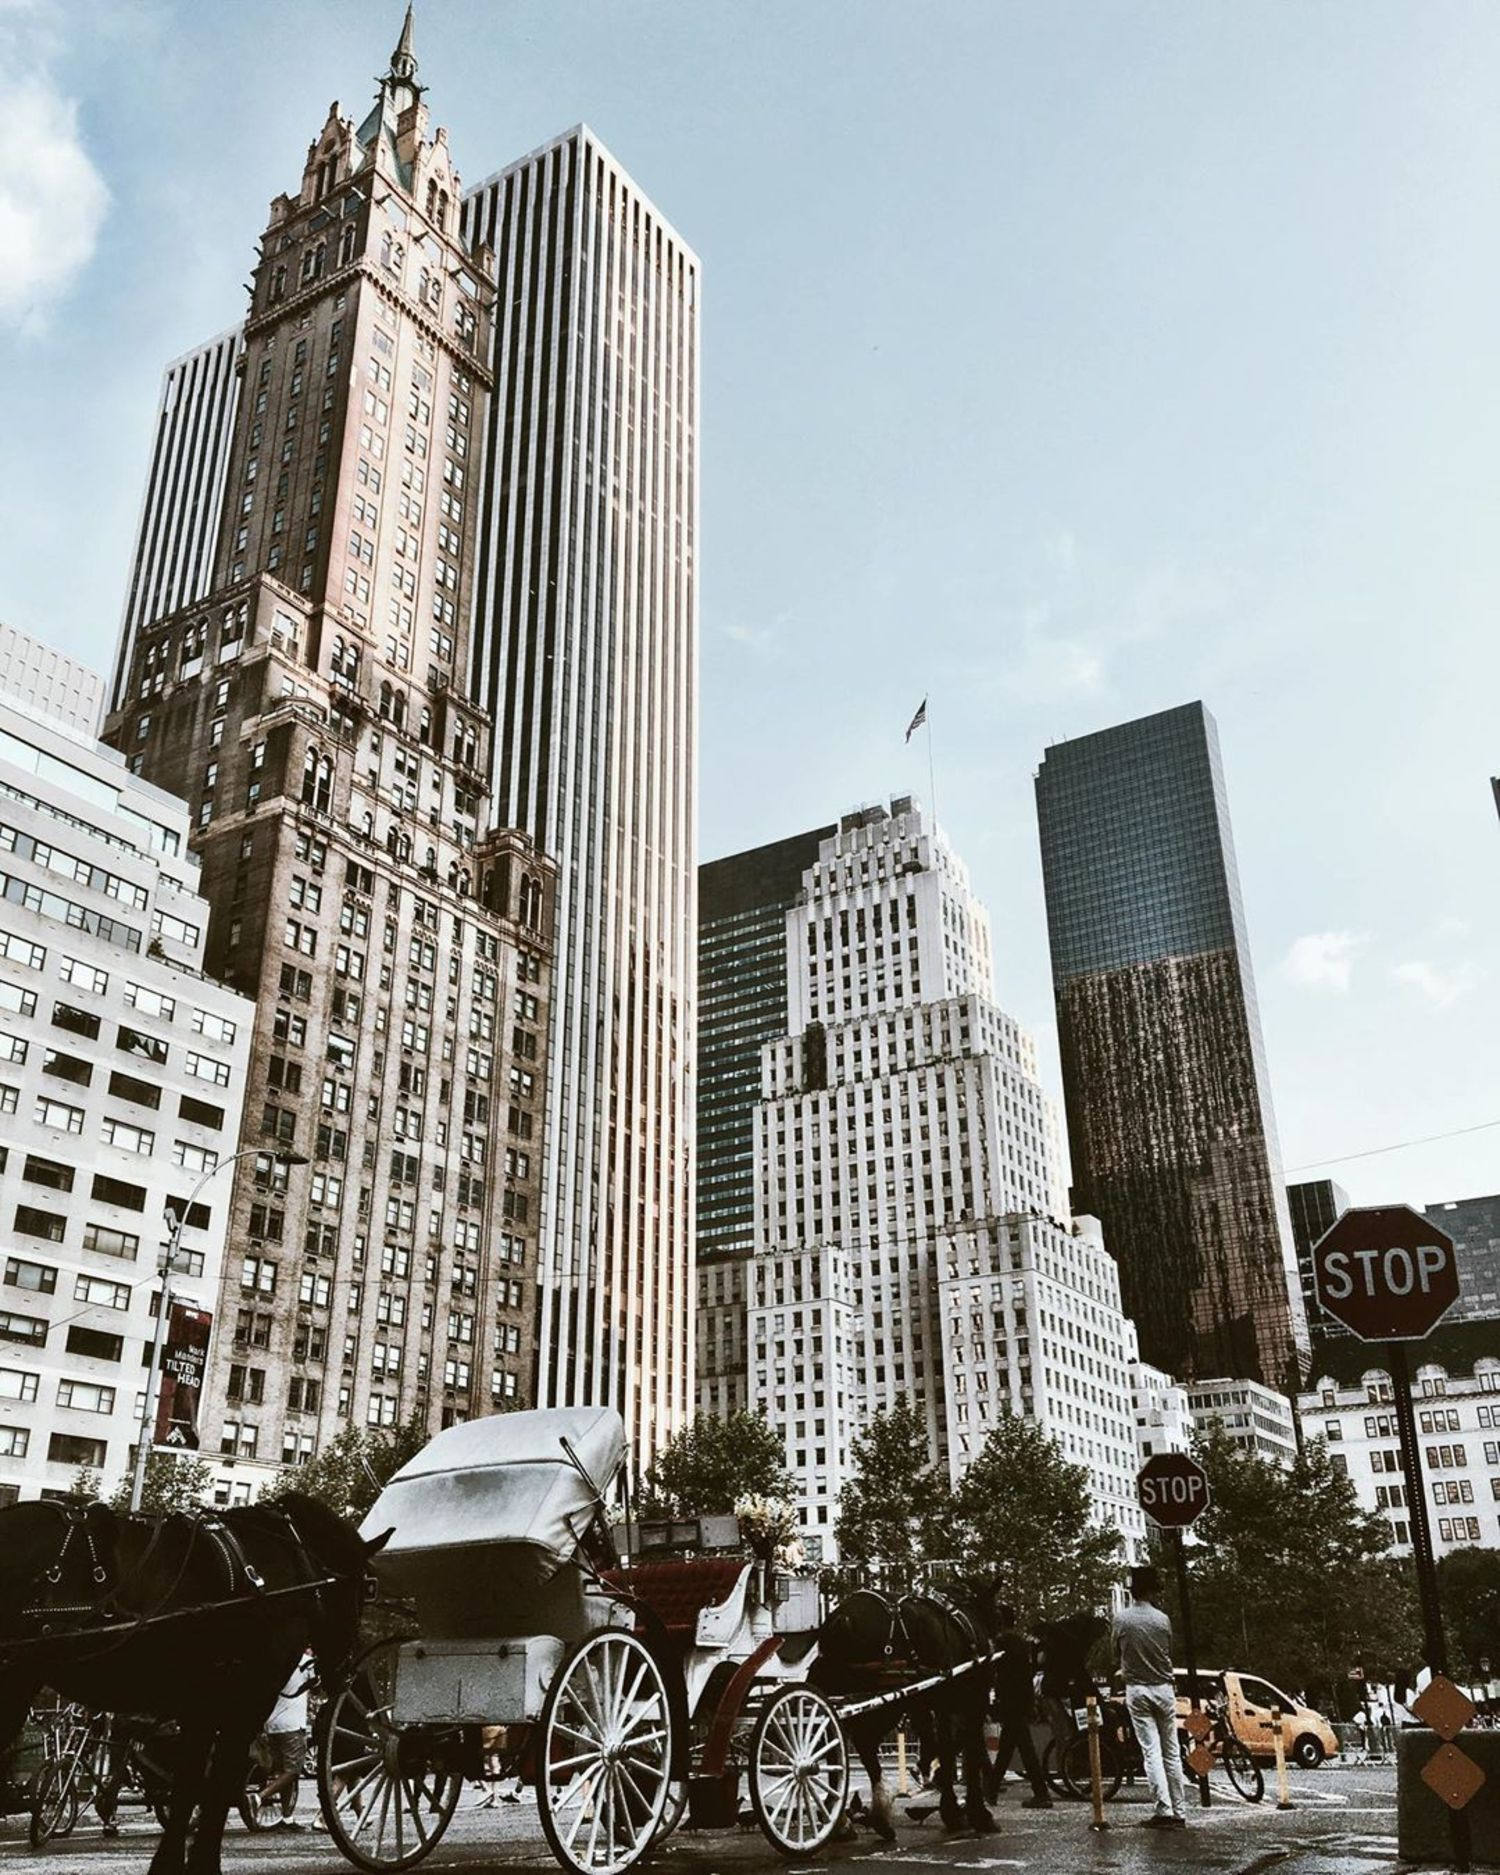 59th St and 5th Avenue, Central Park, Manhattan